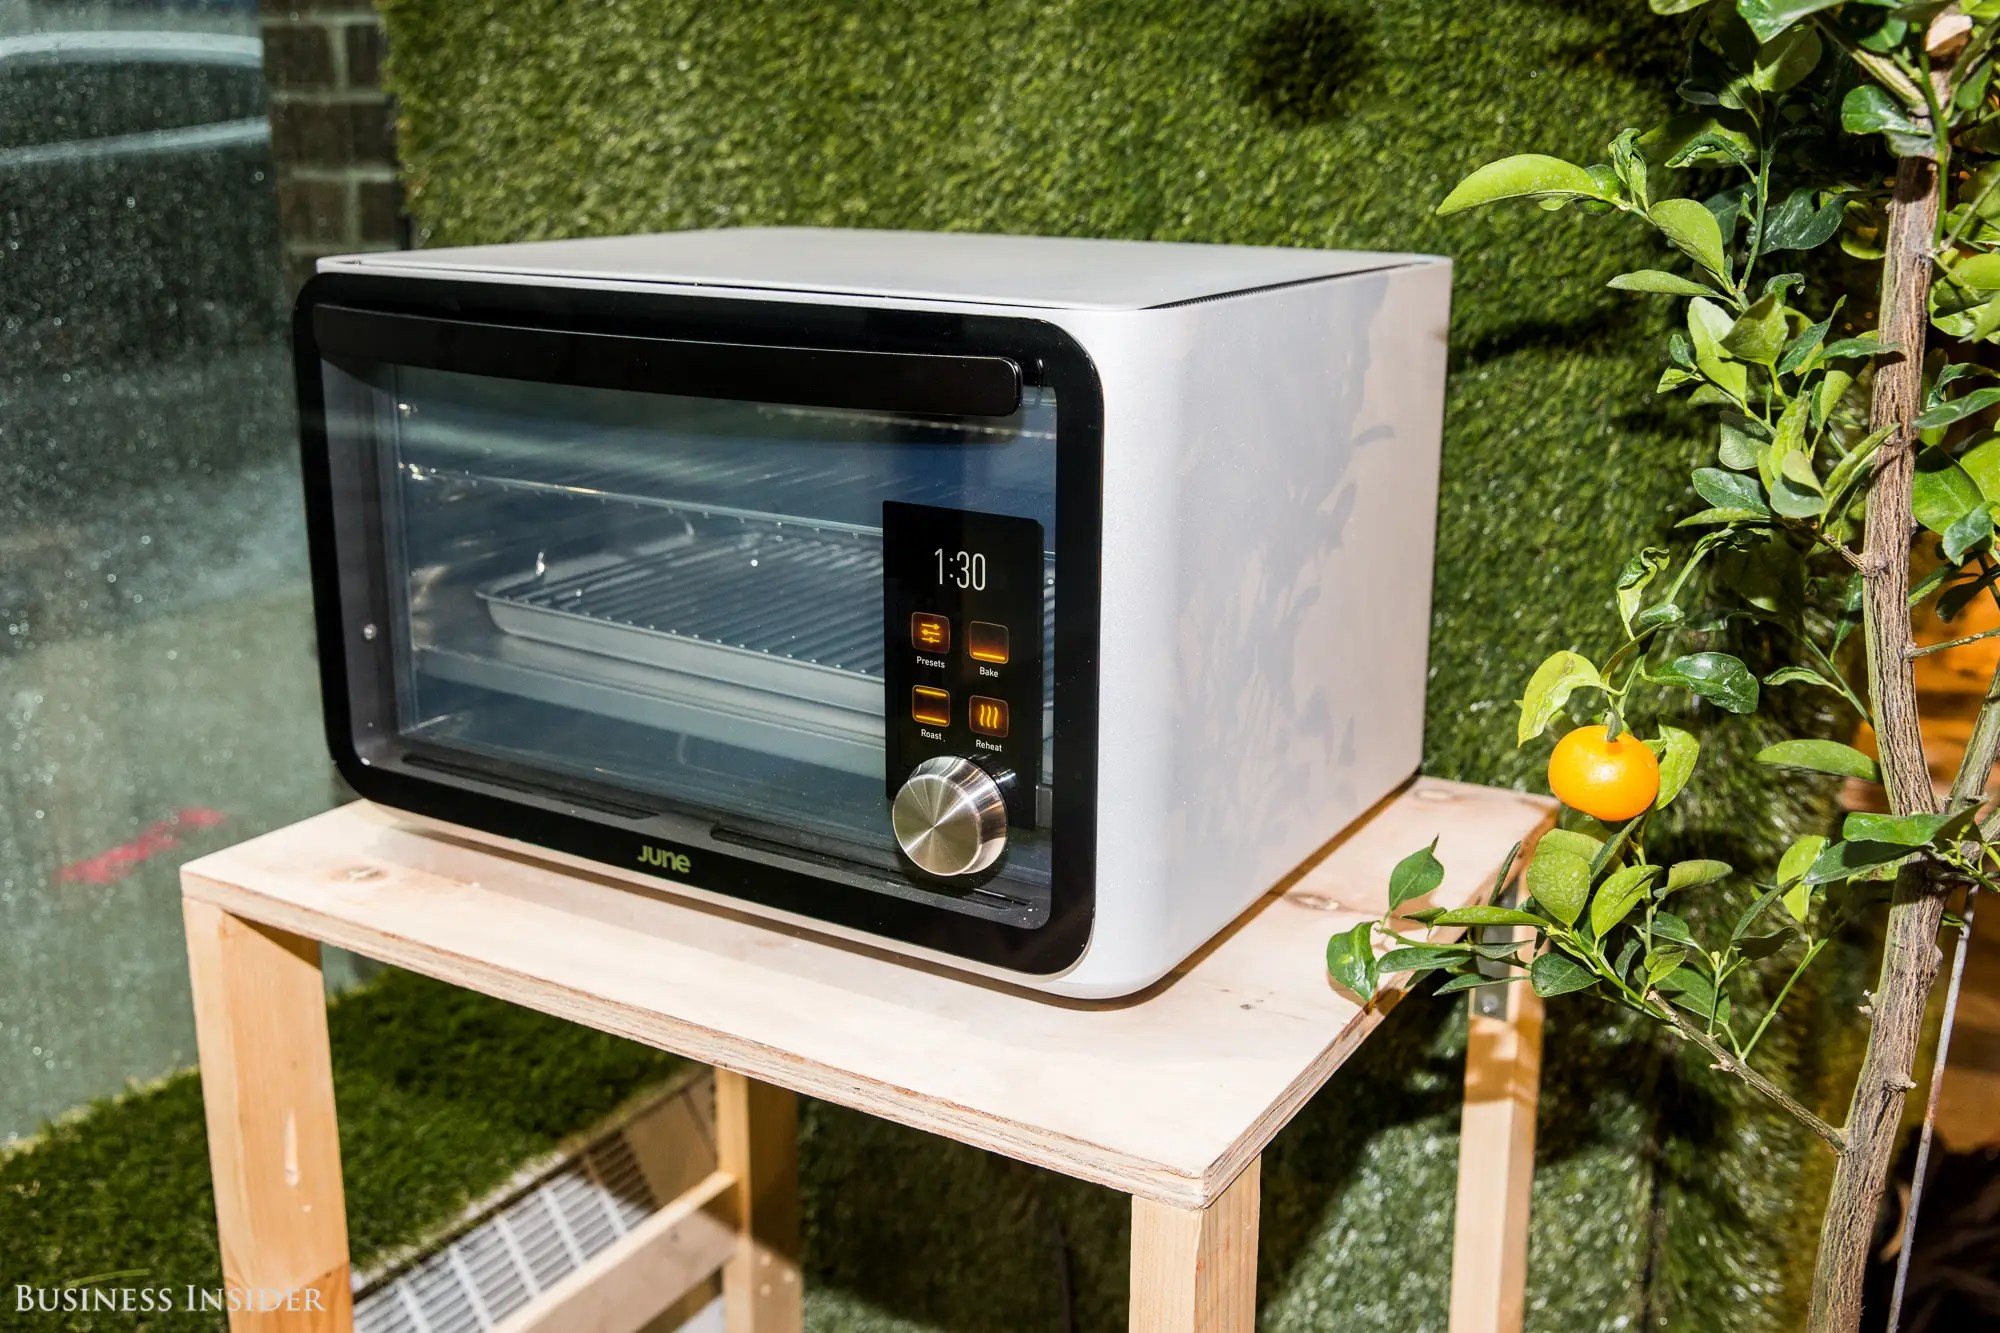 ... while the most expensive item is Silicon Valley's famed June Oven, which uses artificial intelligence to cook meals and costs $1,500.